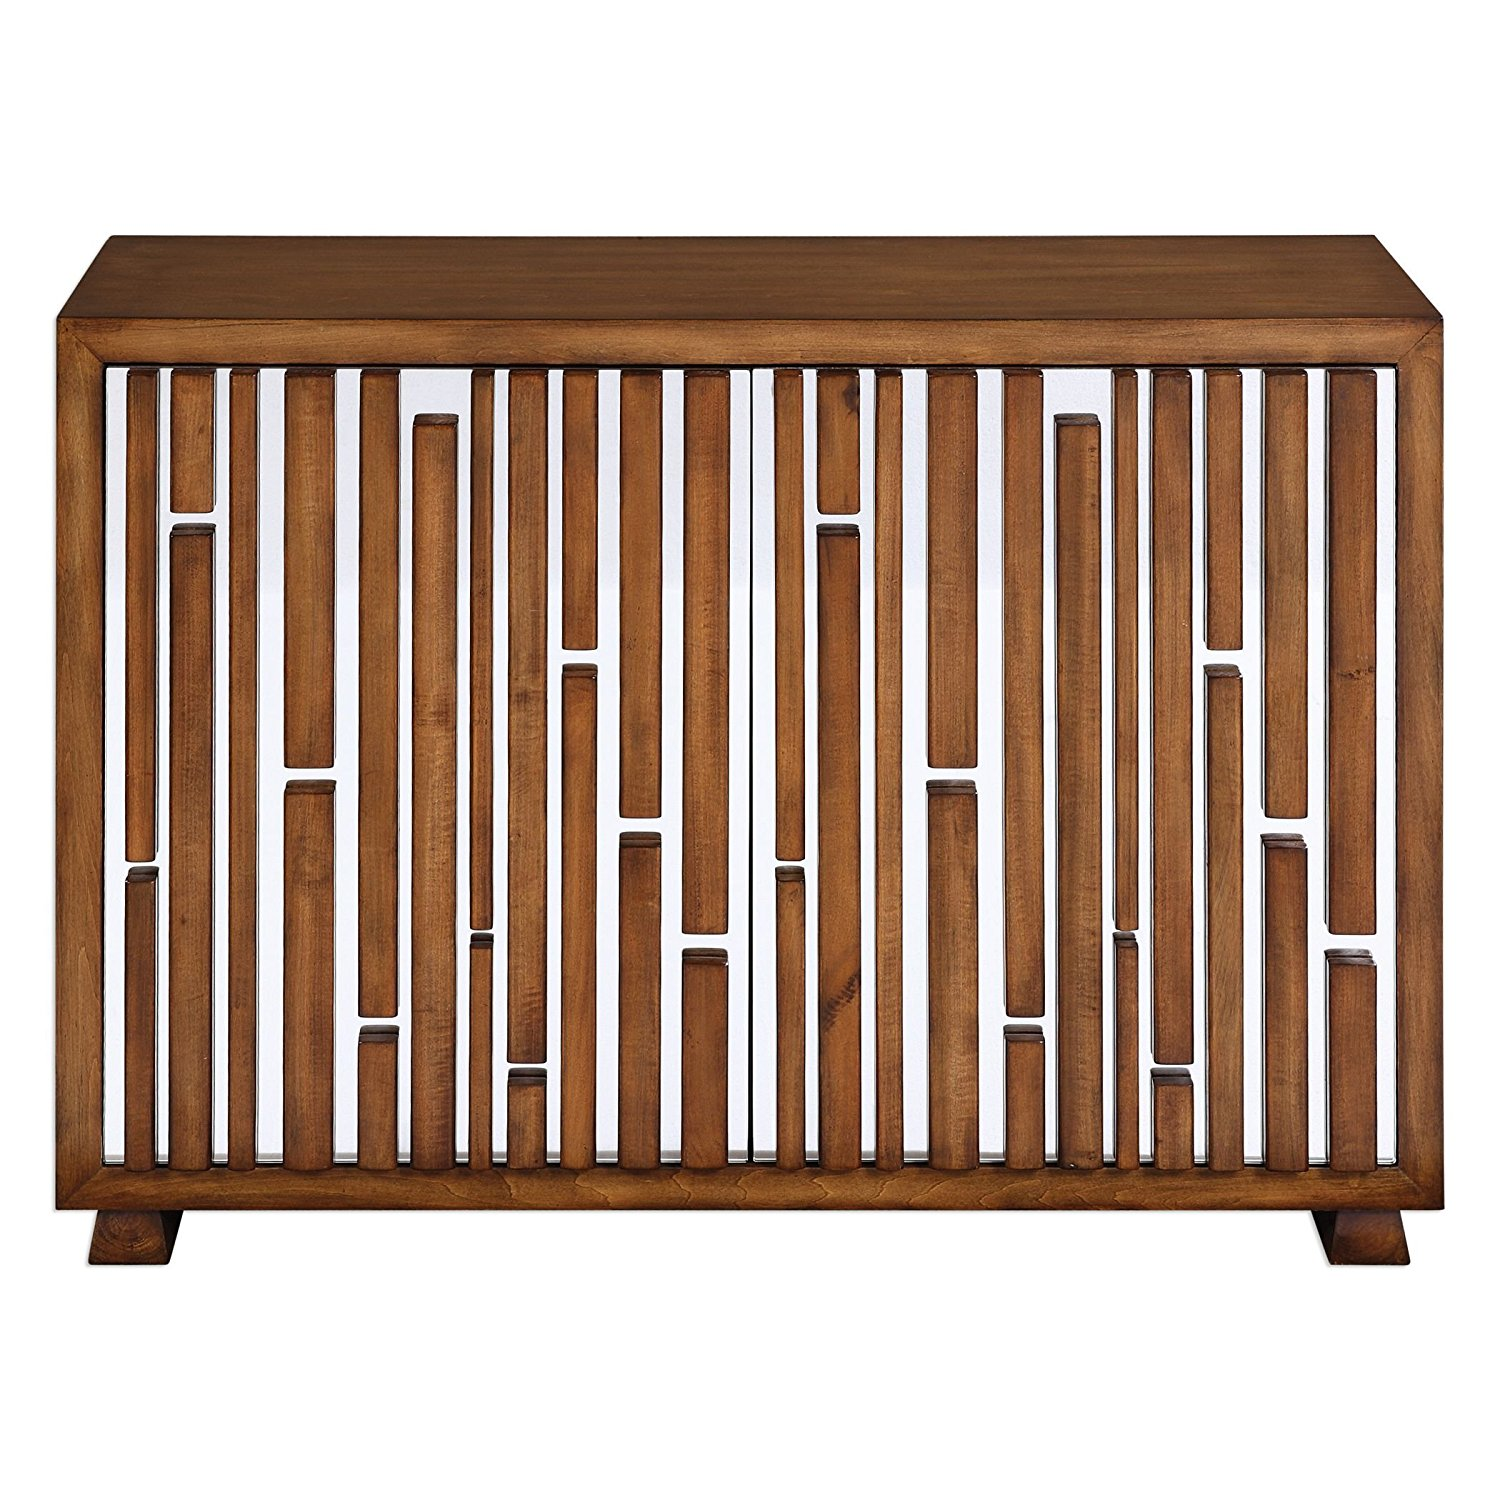 Get Quotations · Retro Mid Century Modern Mirrored Console Cabinet |  Geometric Wood Art Deco 1950s Style